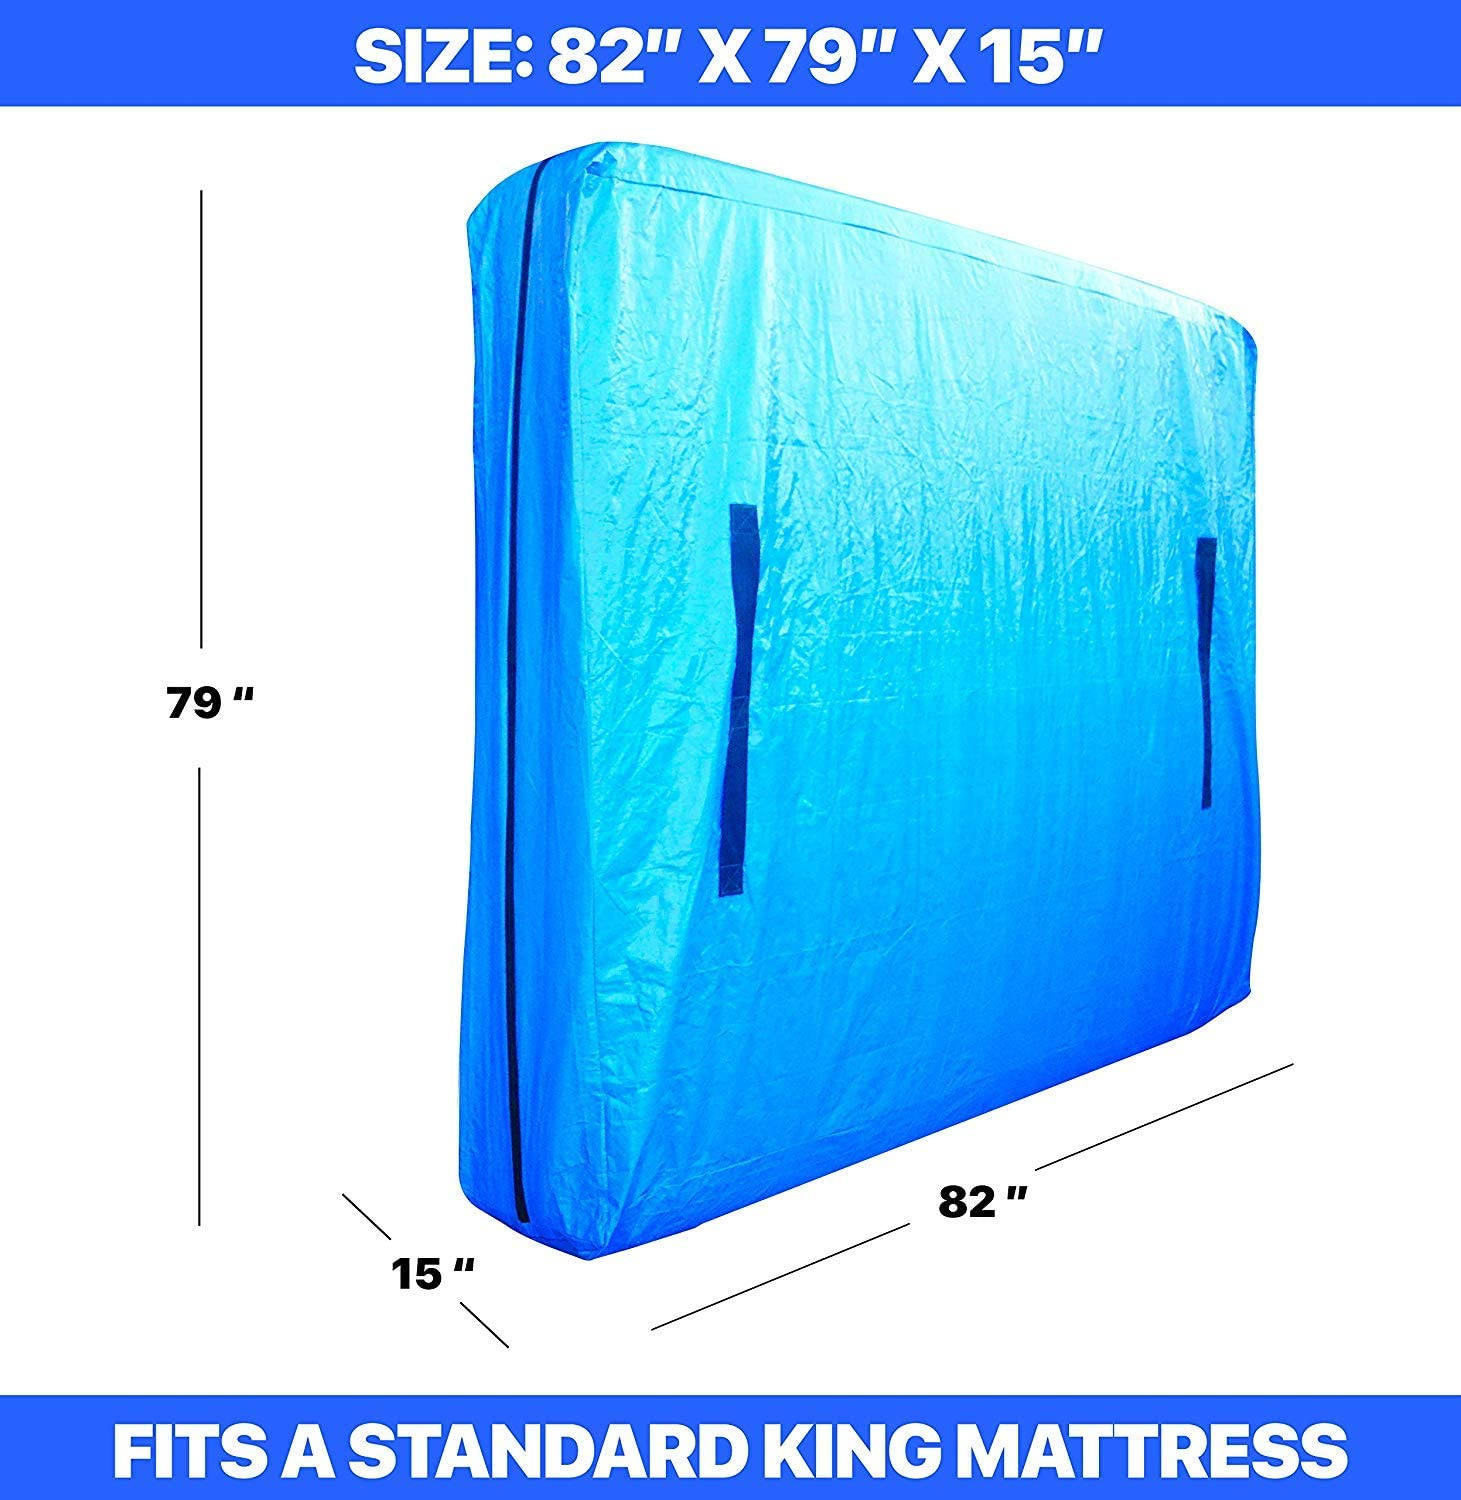 HC Covers Heavy Duty Mattress Bag for Moving /& Long-Term Storage with Strong Zipper Closure and 8 Handles Premium Quality Twin XL, Blue